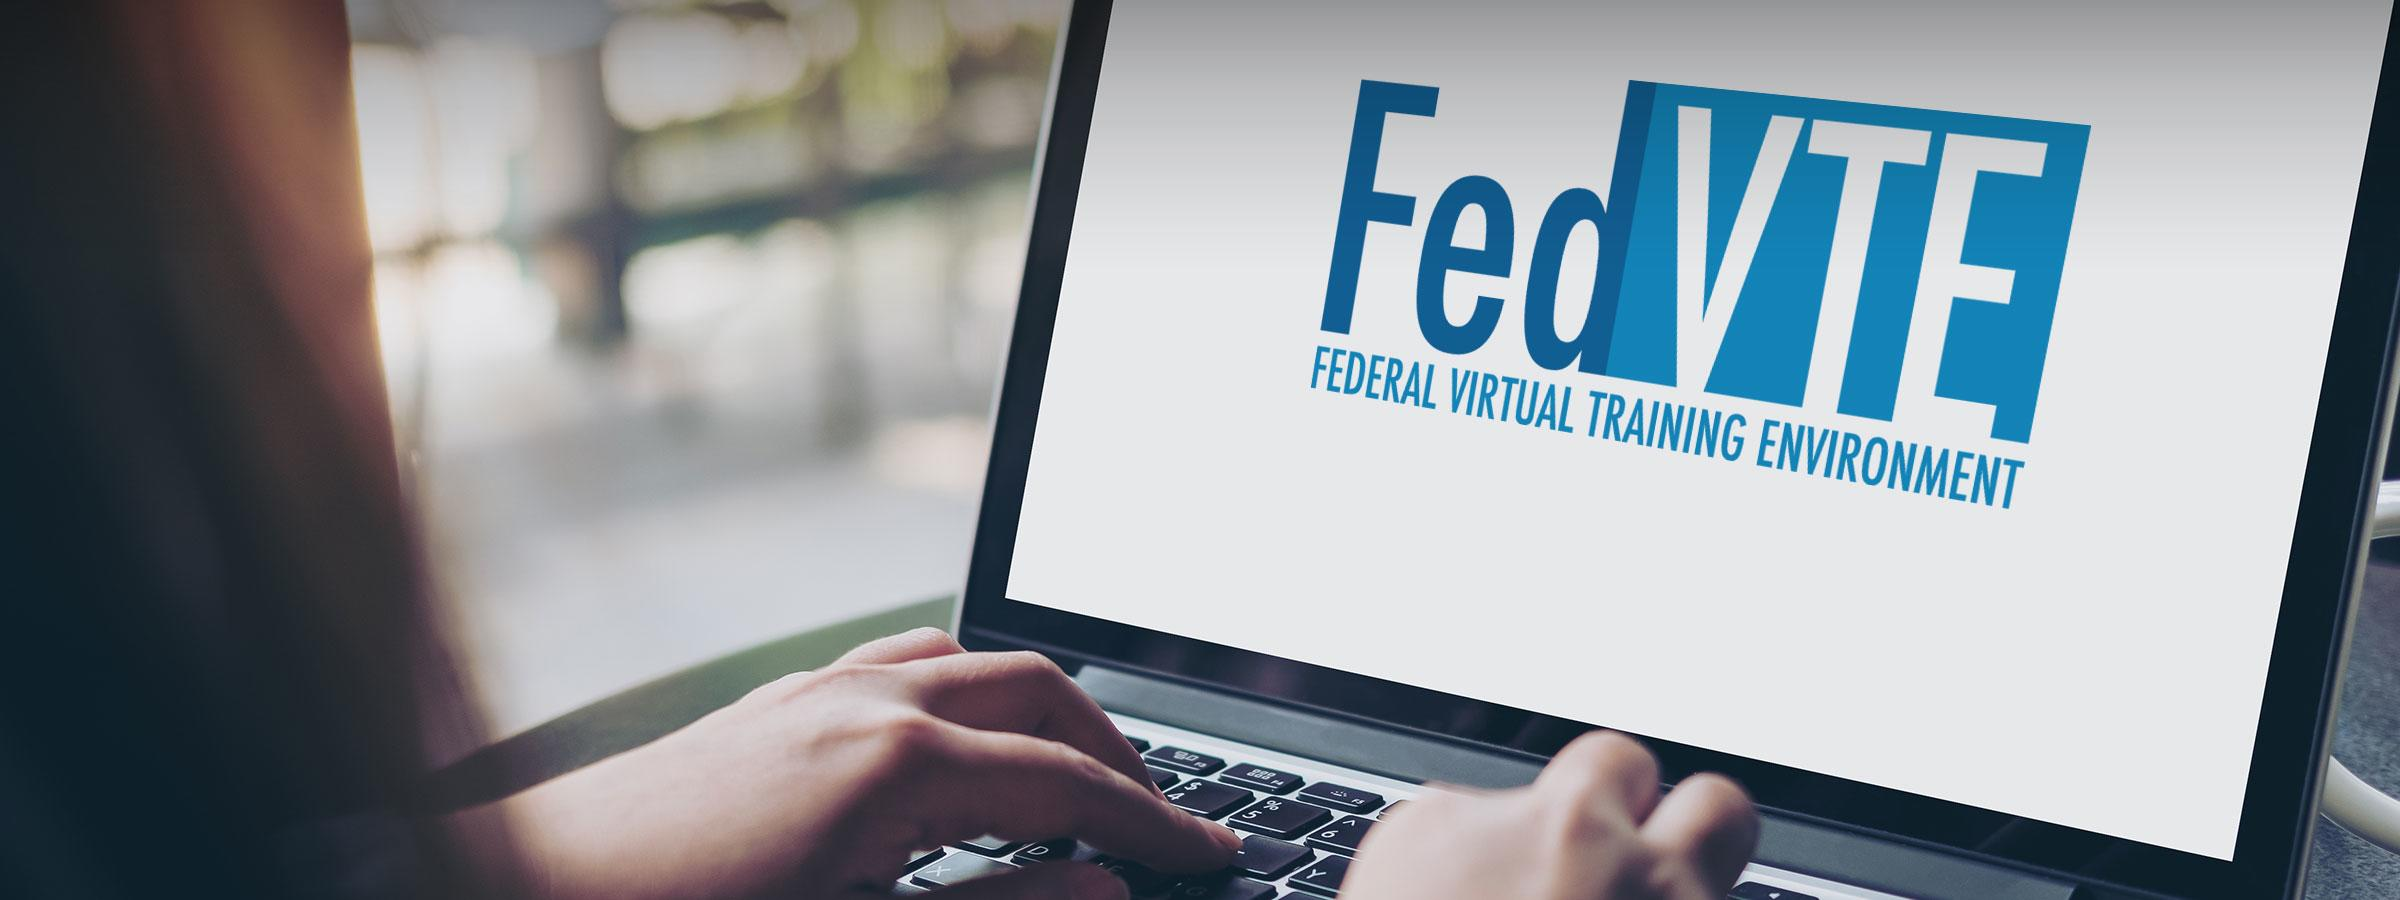 Individual at laptop on FedVTE website